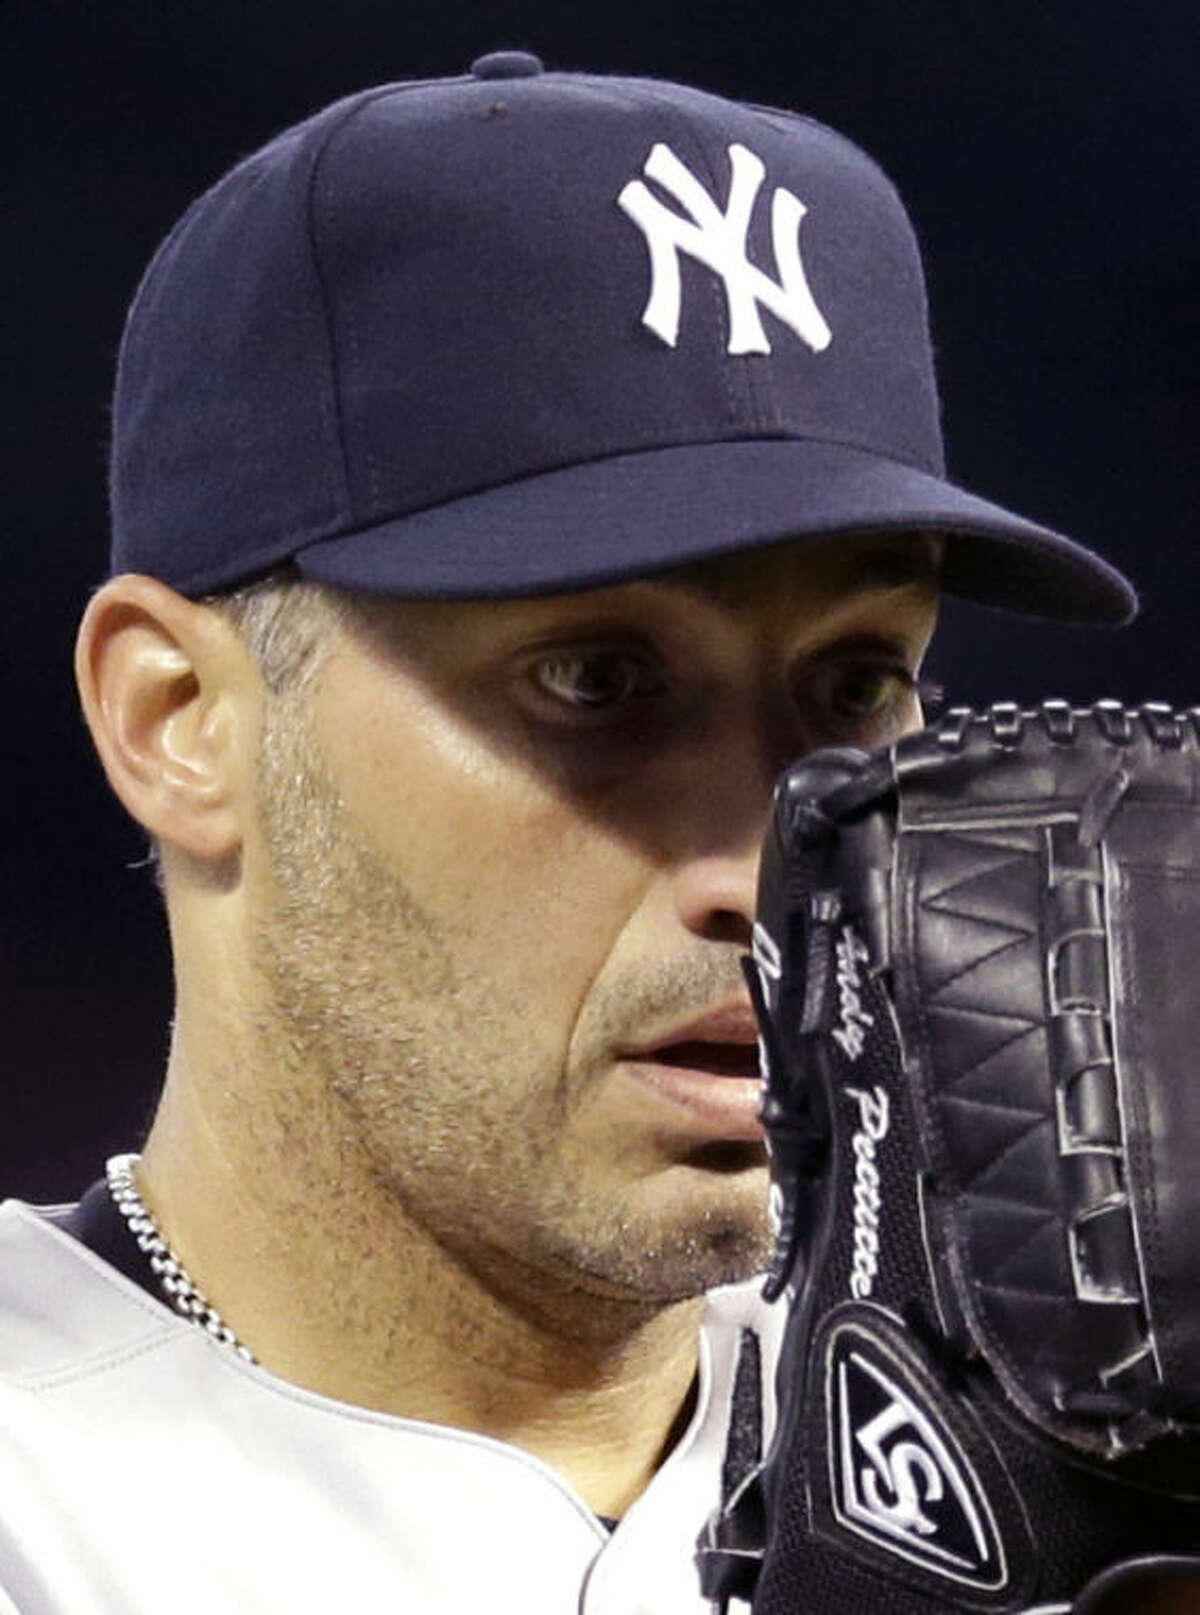 New York Yankees starting pitcher Andy Pettitte prepares to throw a pitch against the Houston Astros during the third inning of a baseball game Saturday, Sept. 28, 2013, in Houston. (AP Photo/David J. Phillip)